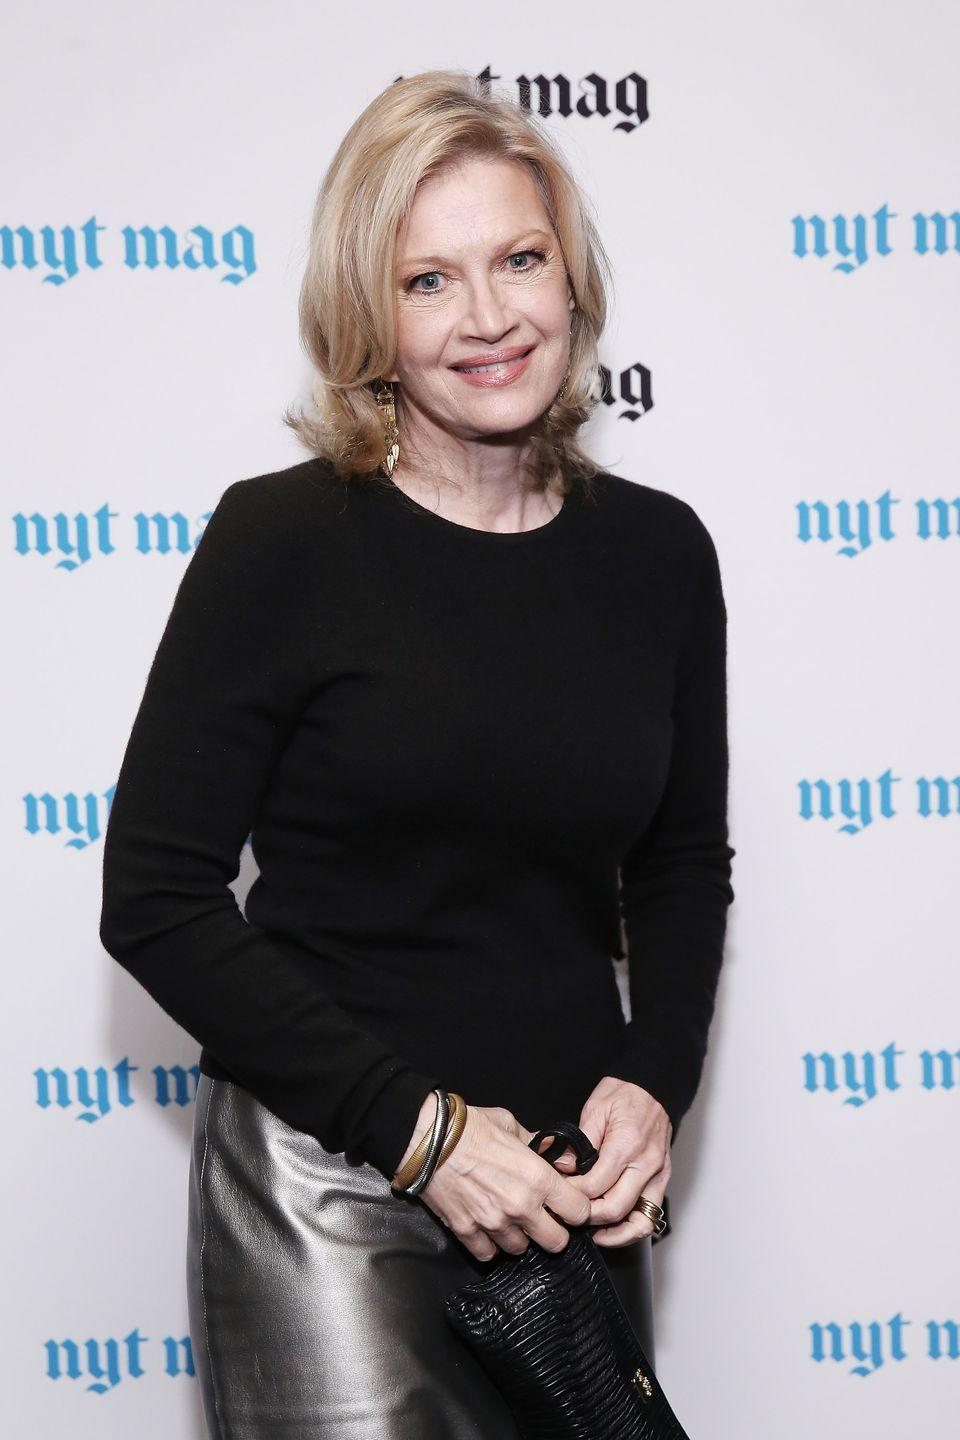 <p>Since her pageant days, she has become one of the most famous journalists in the world. Her accomplishments have been recognized by millions, and she was even inducted into the Television Hall of Fame in 1997.</p>